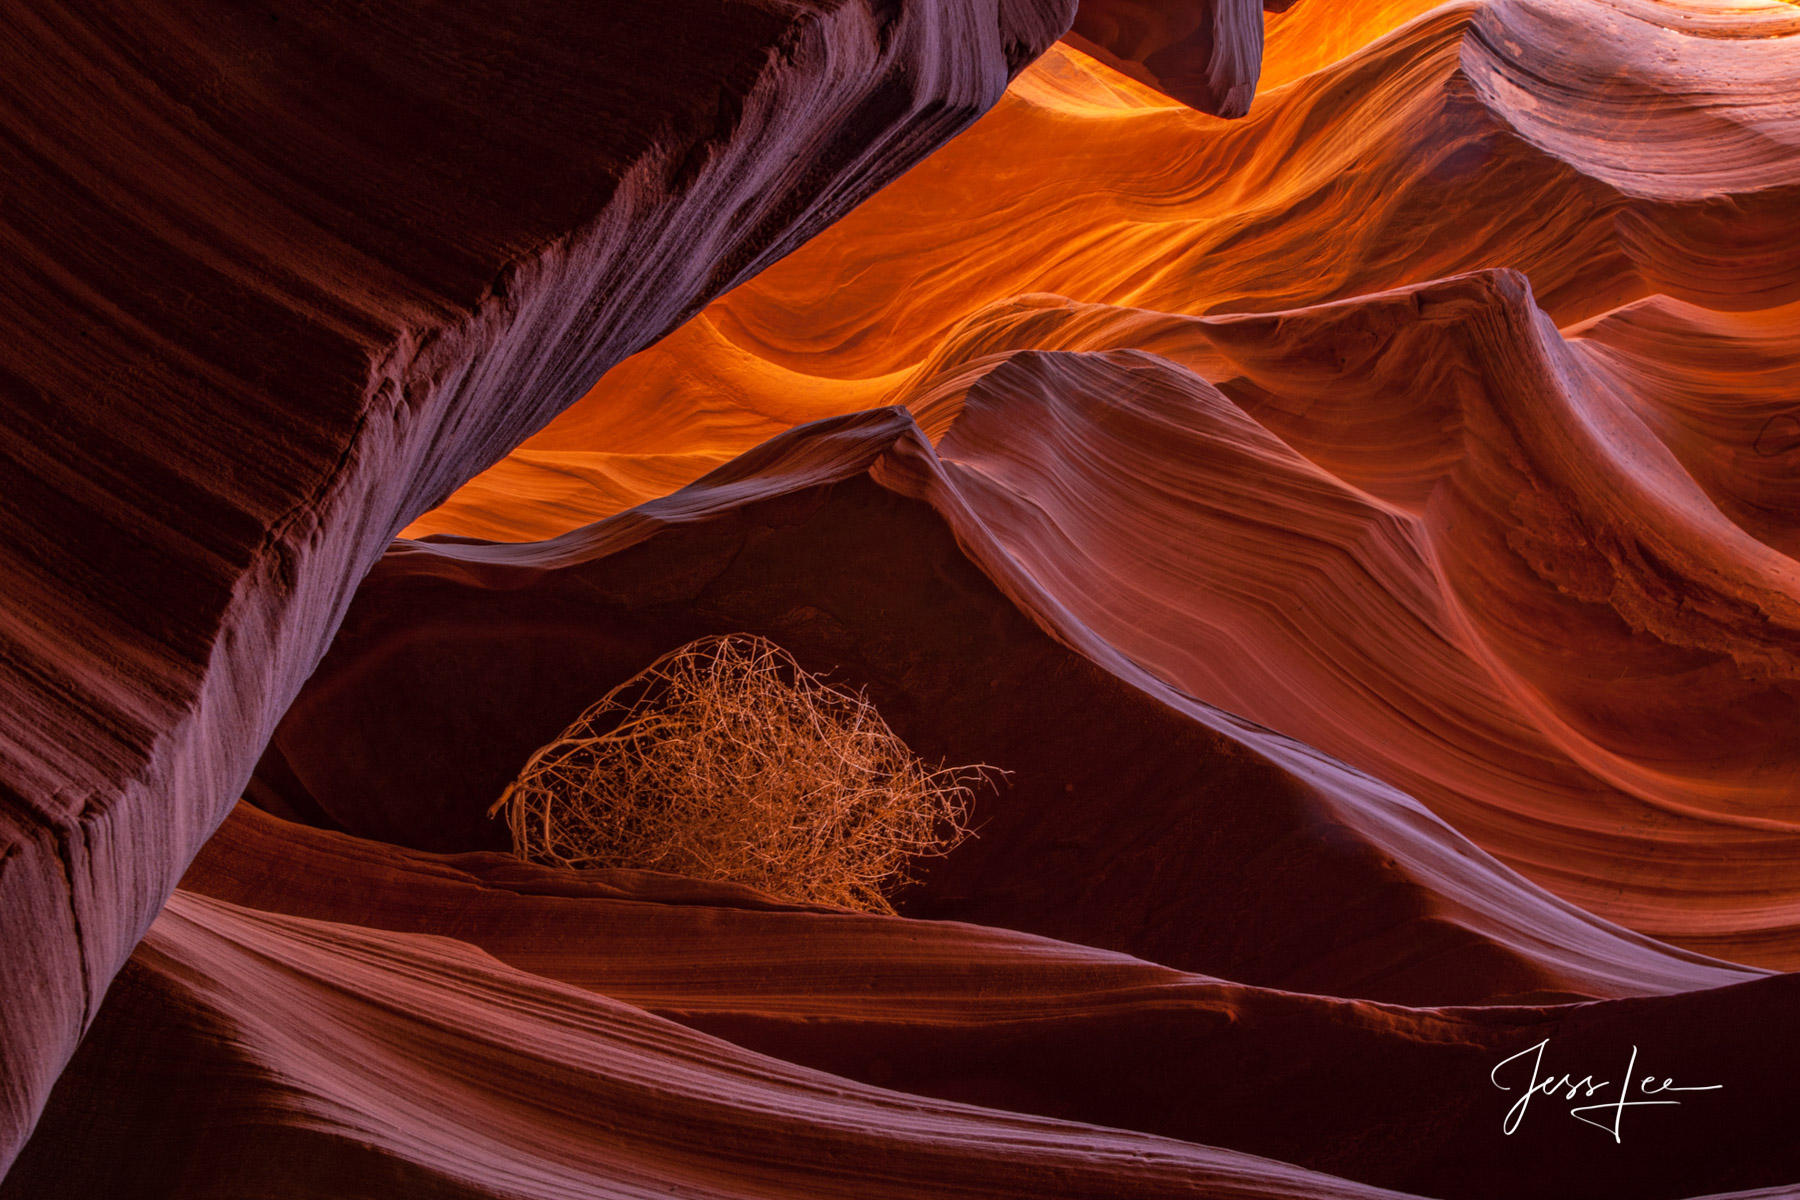 Limited Edition of 50 Exclusive high-resolution Museum Quality Fine Art Prints of Red Rocks Country Slot Canyon in the American...